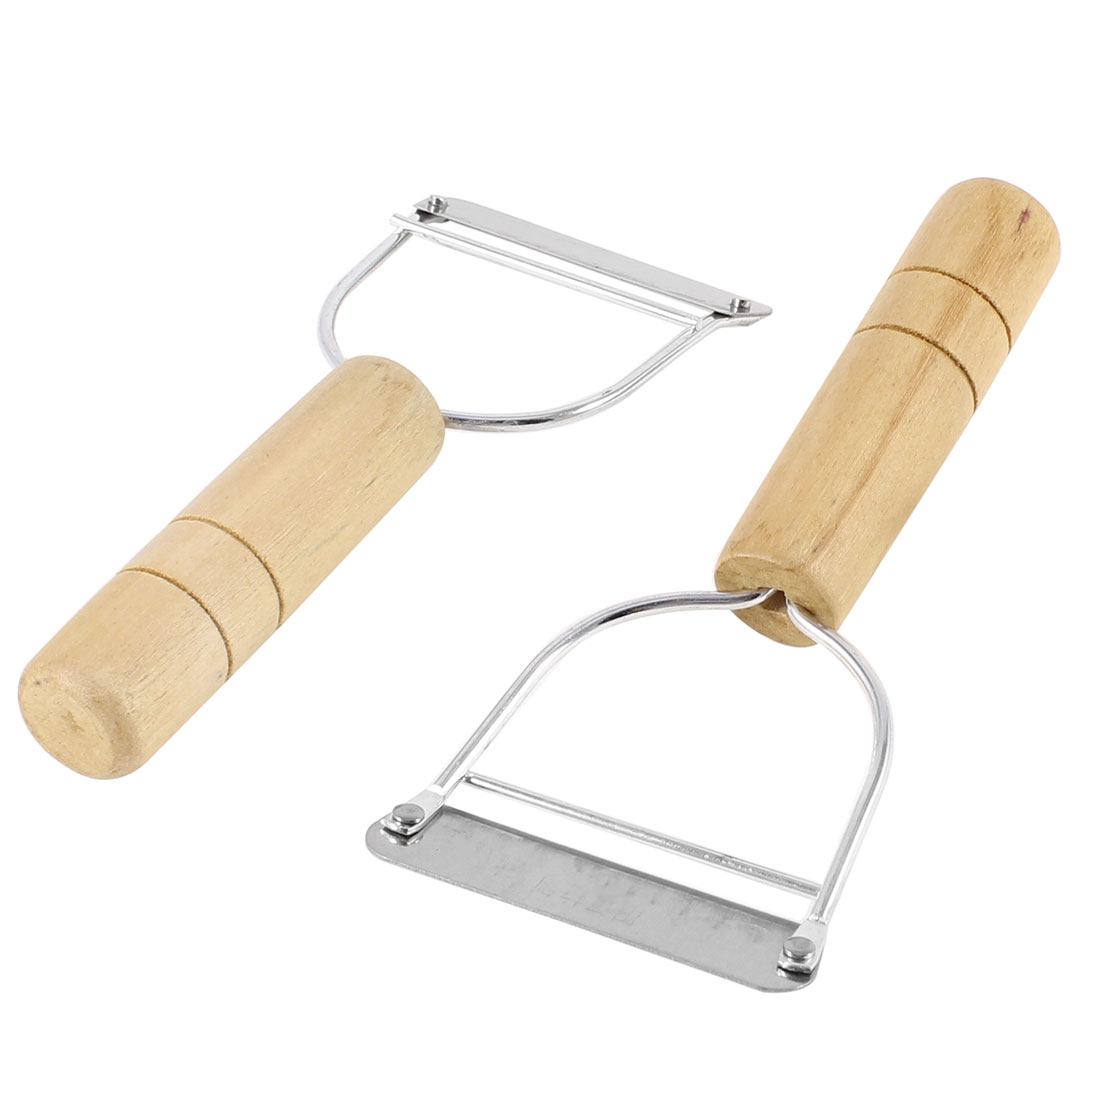 2 Pcs Fruit Vegetable Wooden Handle Stainless Steel Cutter Peeler 5.1""